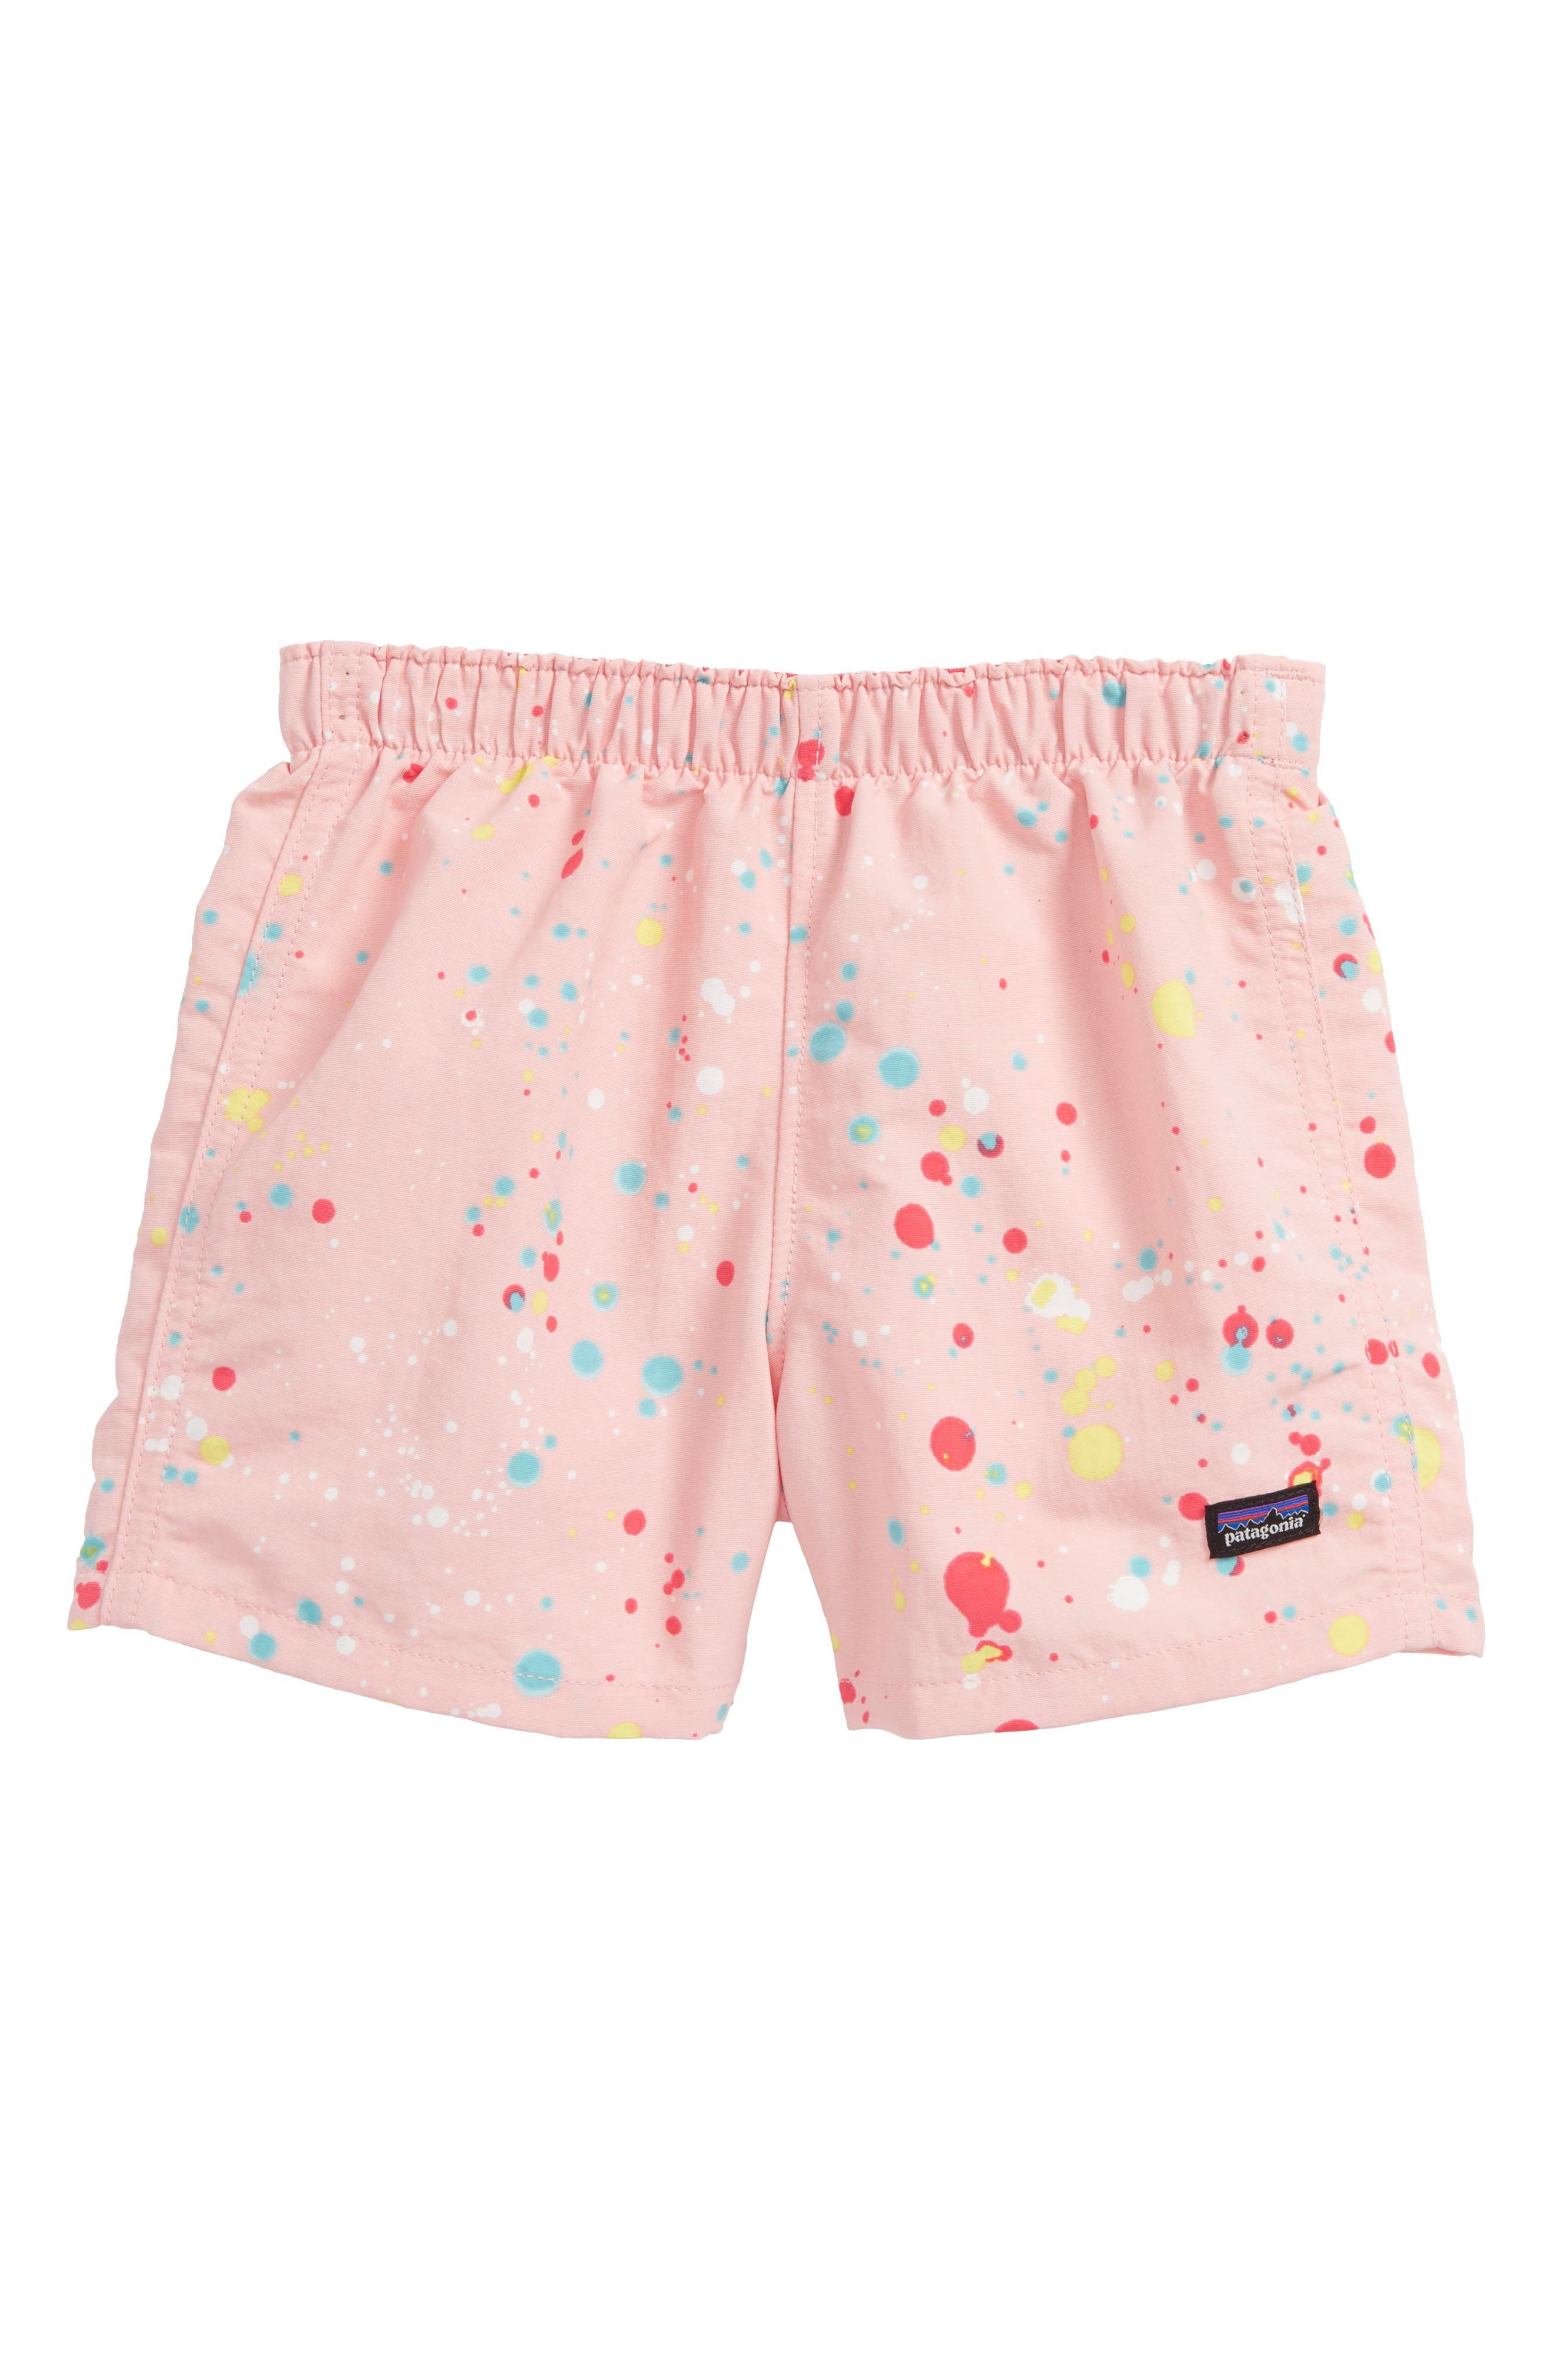 Baggies<sup>™</sup> Cover-Up Shorts,                         Main,                         color, Sqsf Sequoia Feather Pink